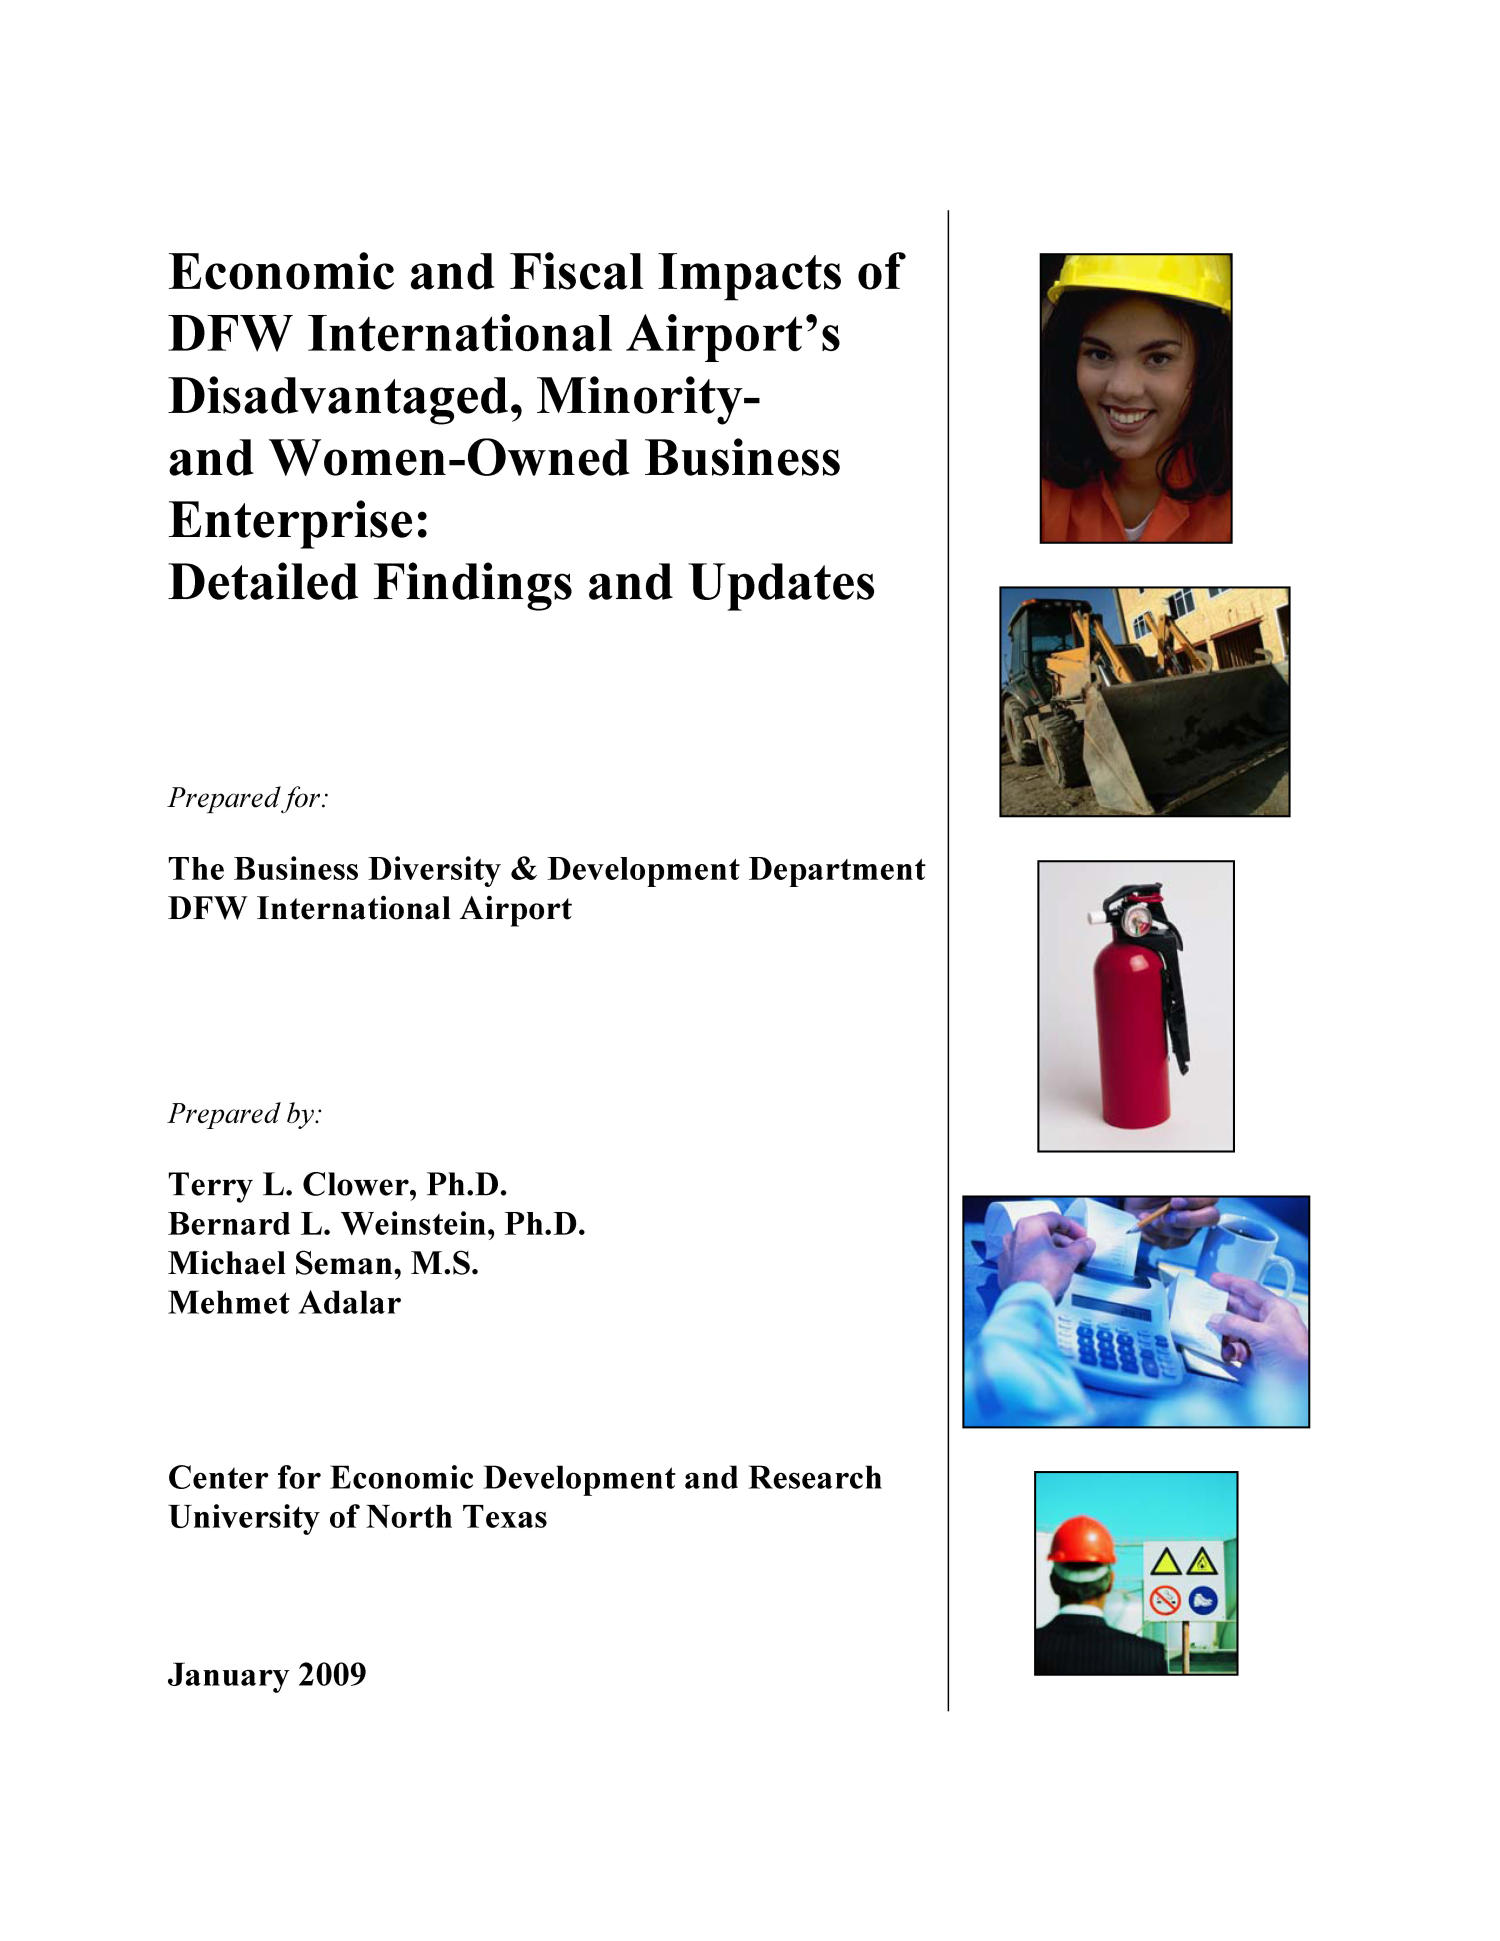 Economic and Fiscal Impacts of DFW International Airport's Disadvantaged, Minority- and Women-Owned Business Enterprise: Detailed Findings and Updates                                                                                                      Front Cover